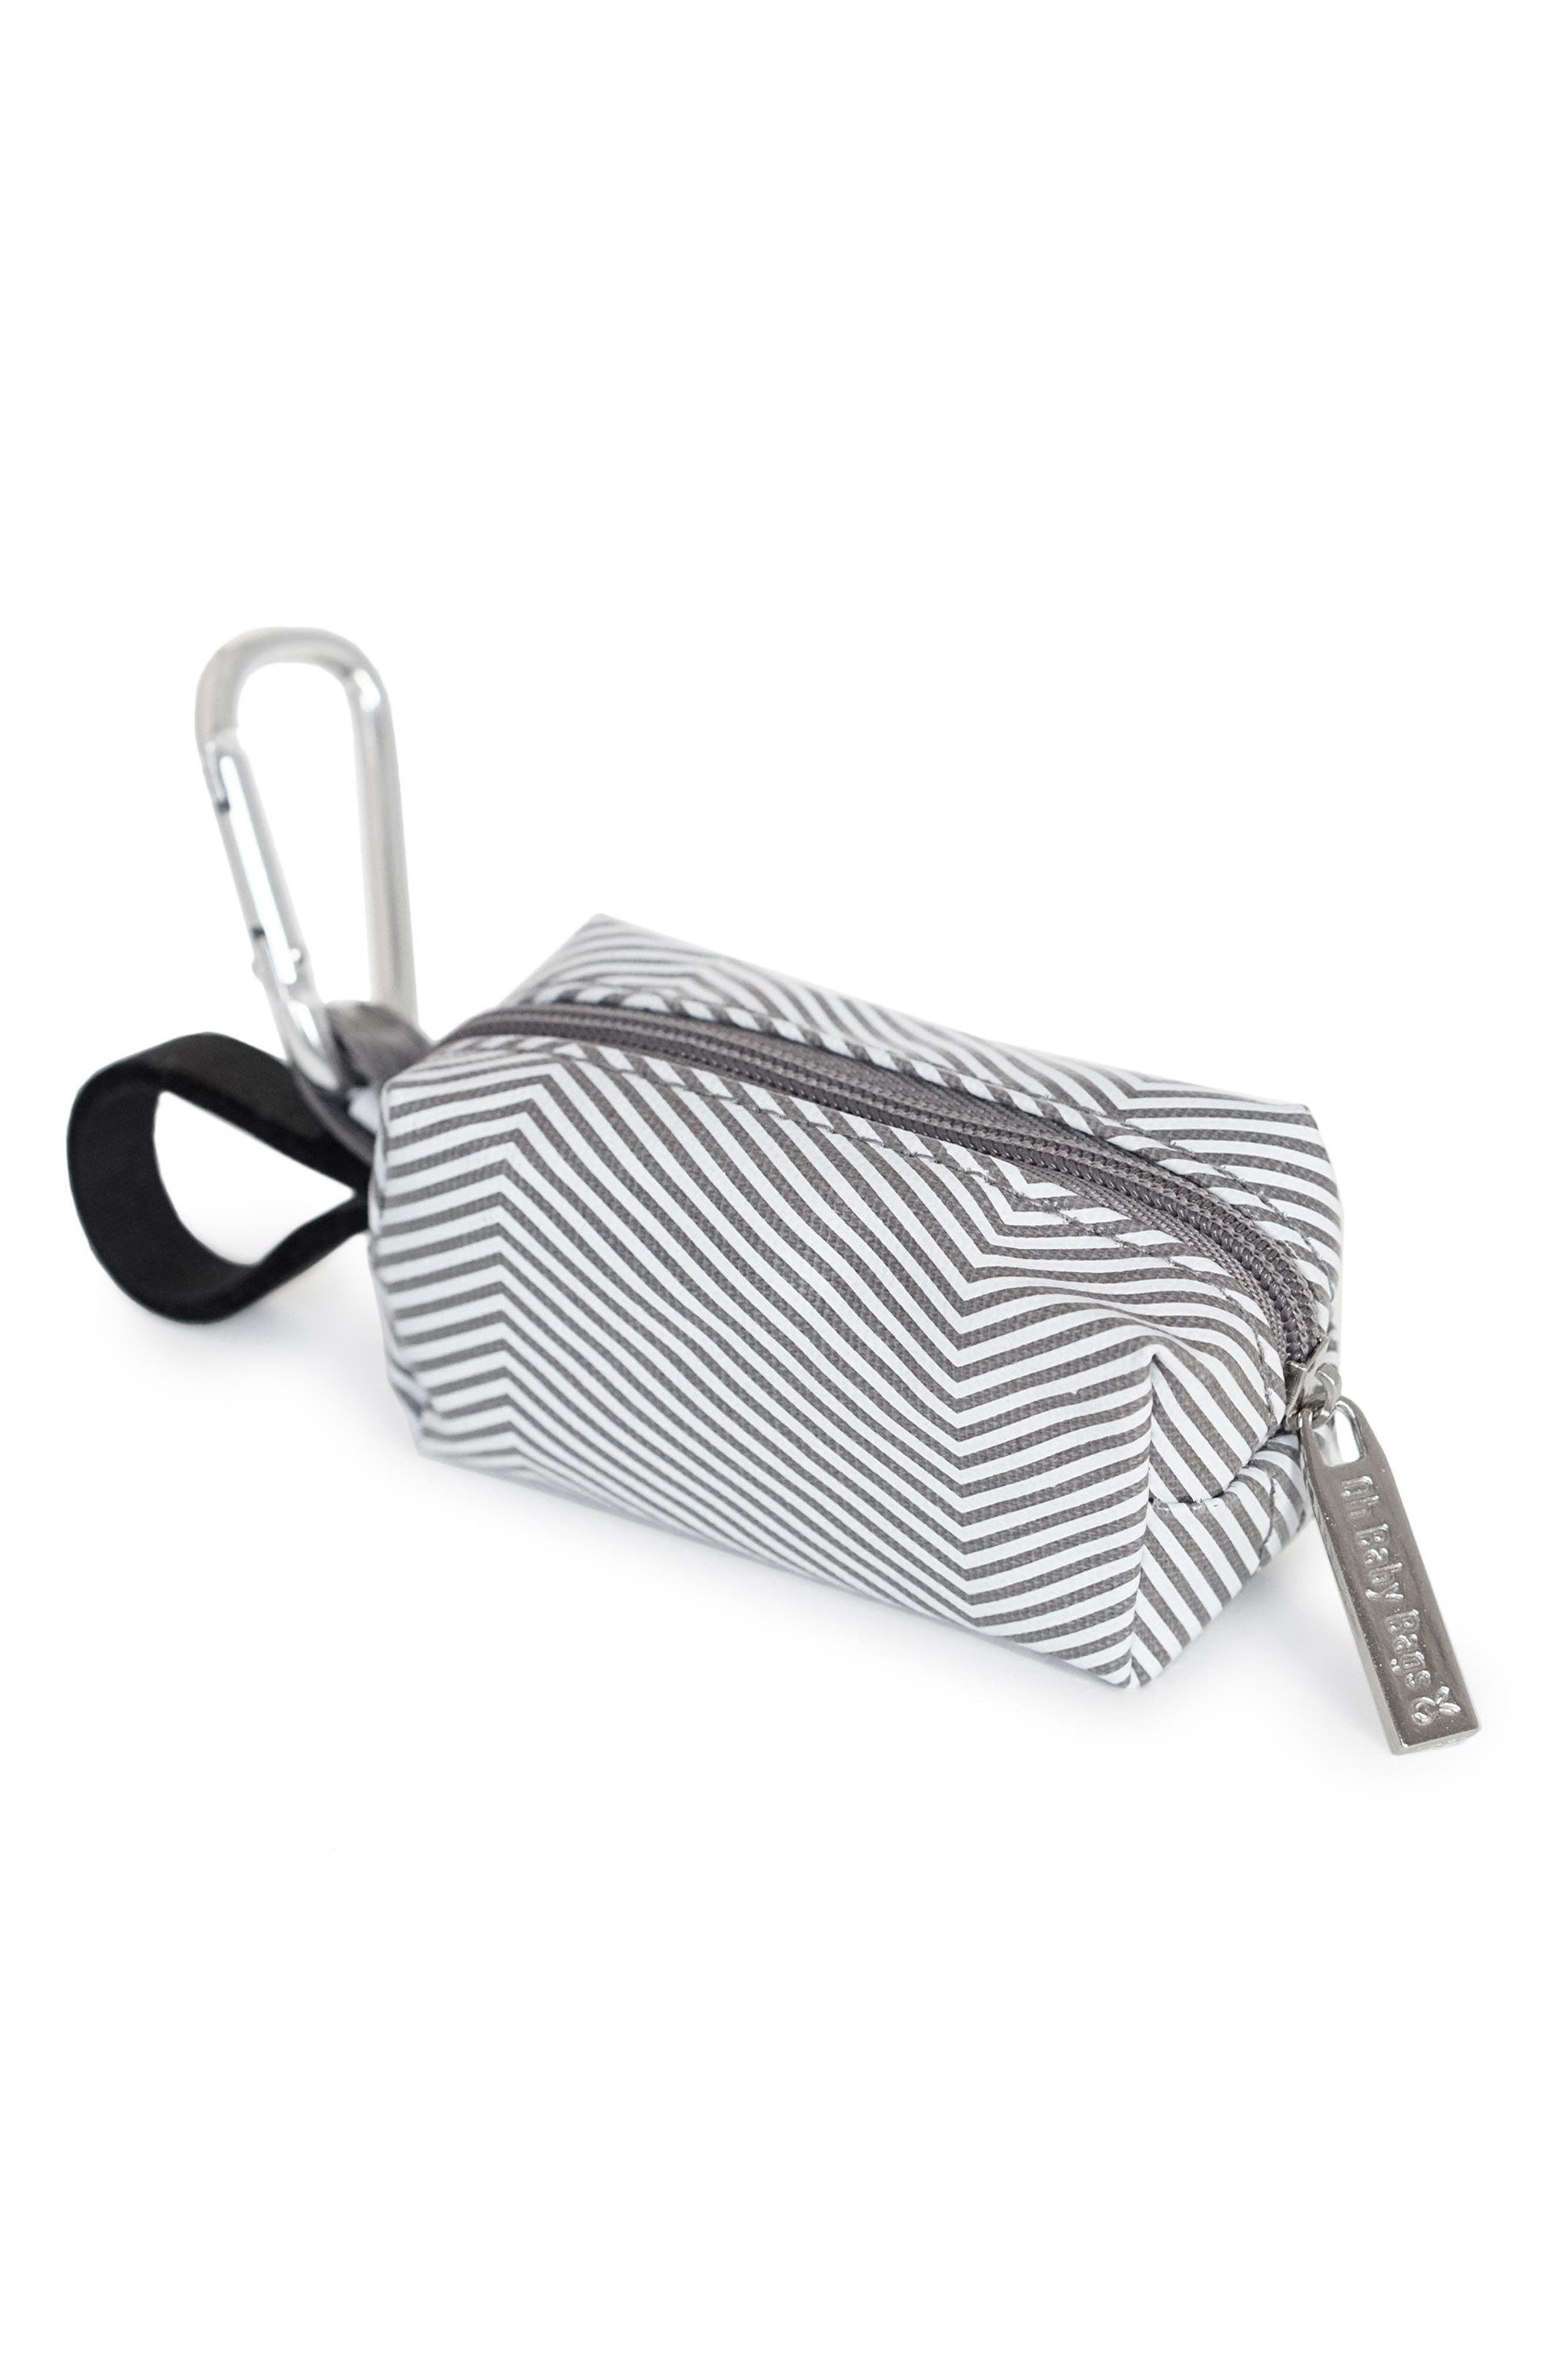 Portable Clip-On Dispenser with Bags,                             Alternate thumbnail 3, color,                             Grey Stripe